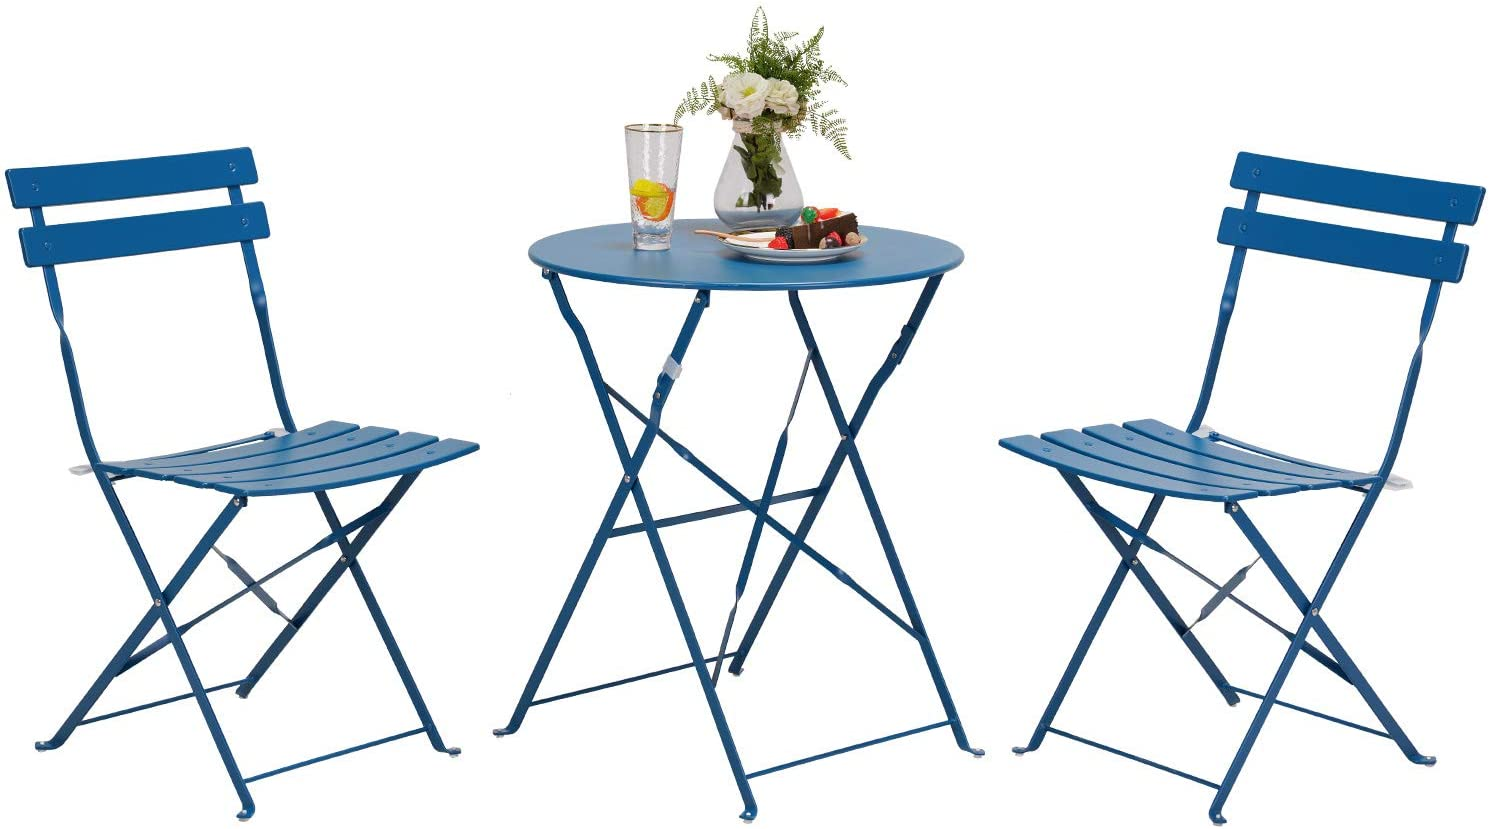 Grand patio Premium Steel Patio Bistro Set, Folding Outdoor Patio Furniture Sets, 3 Piece Patio Set of Foldable Patio Table and Chairs, Peacock Blue